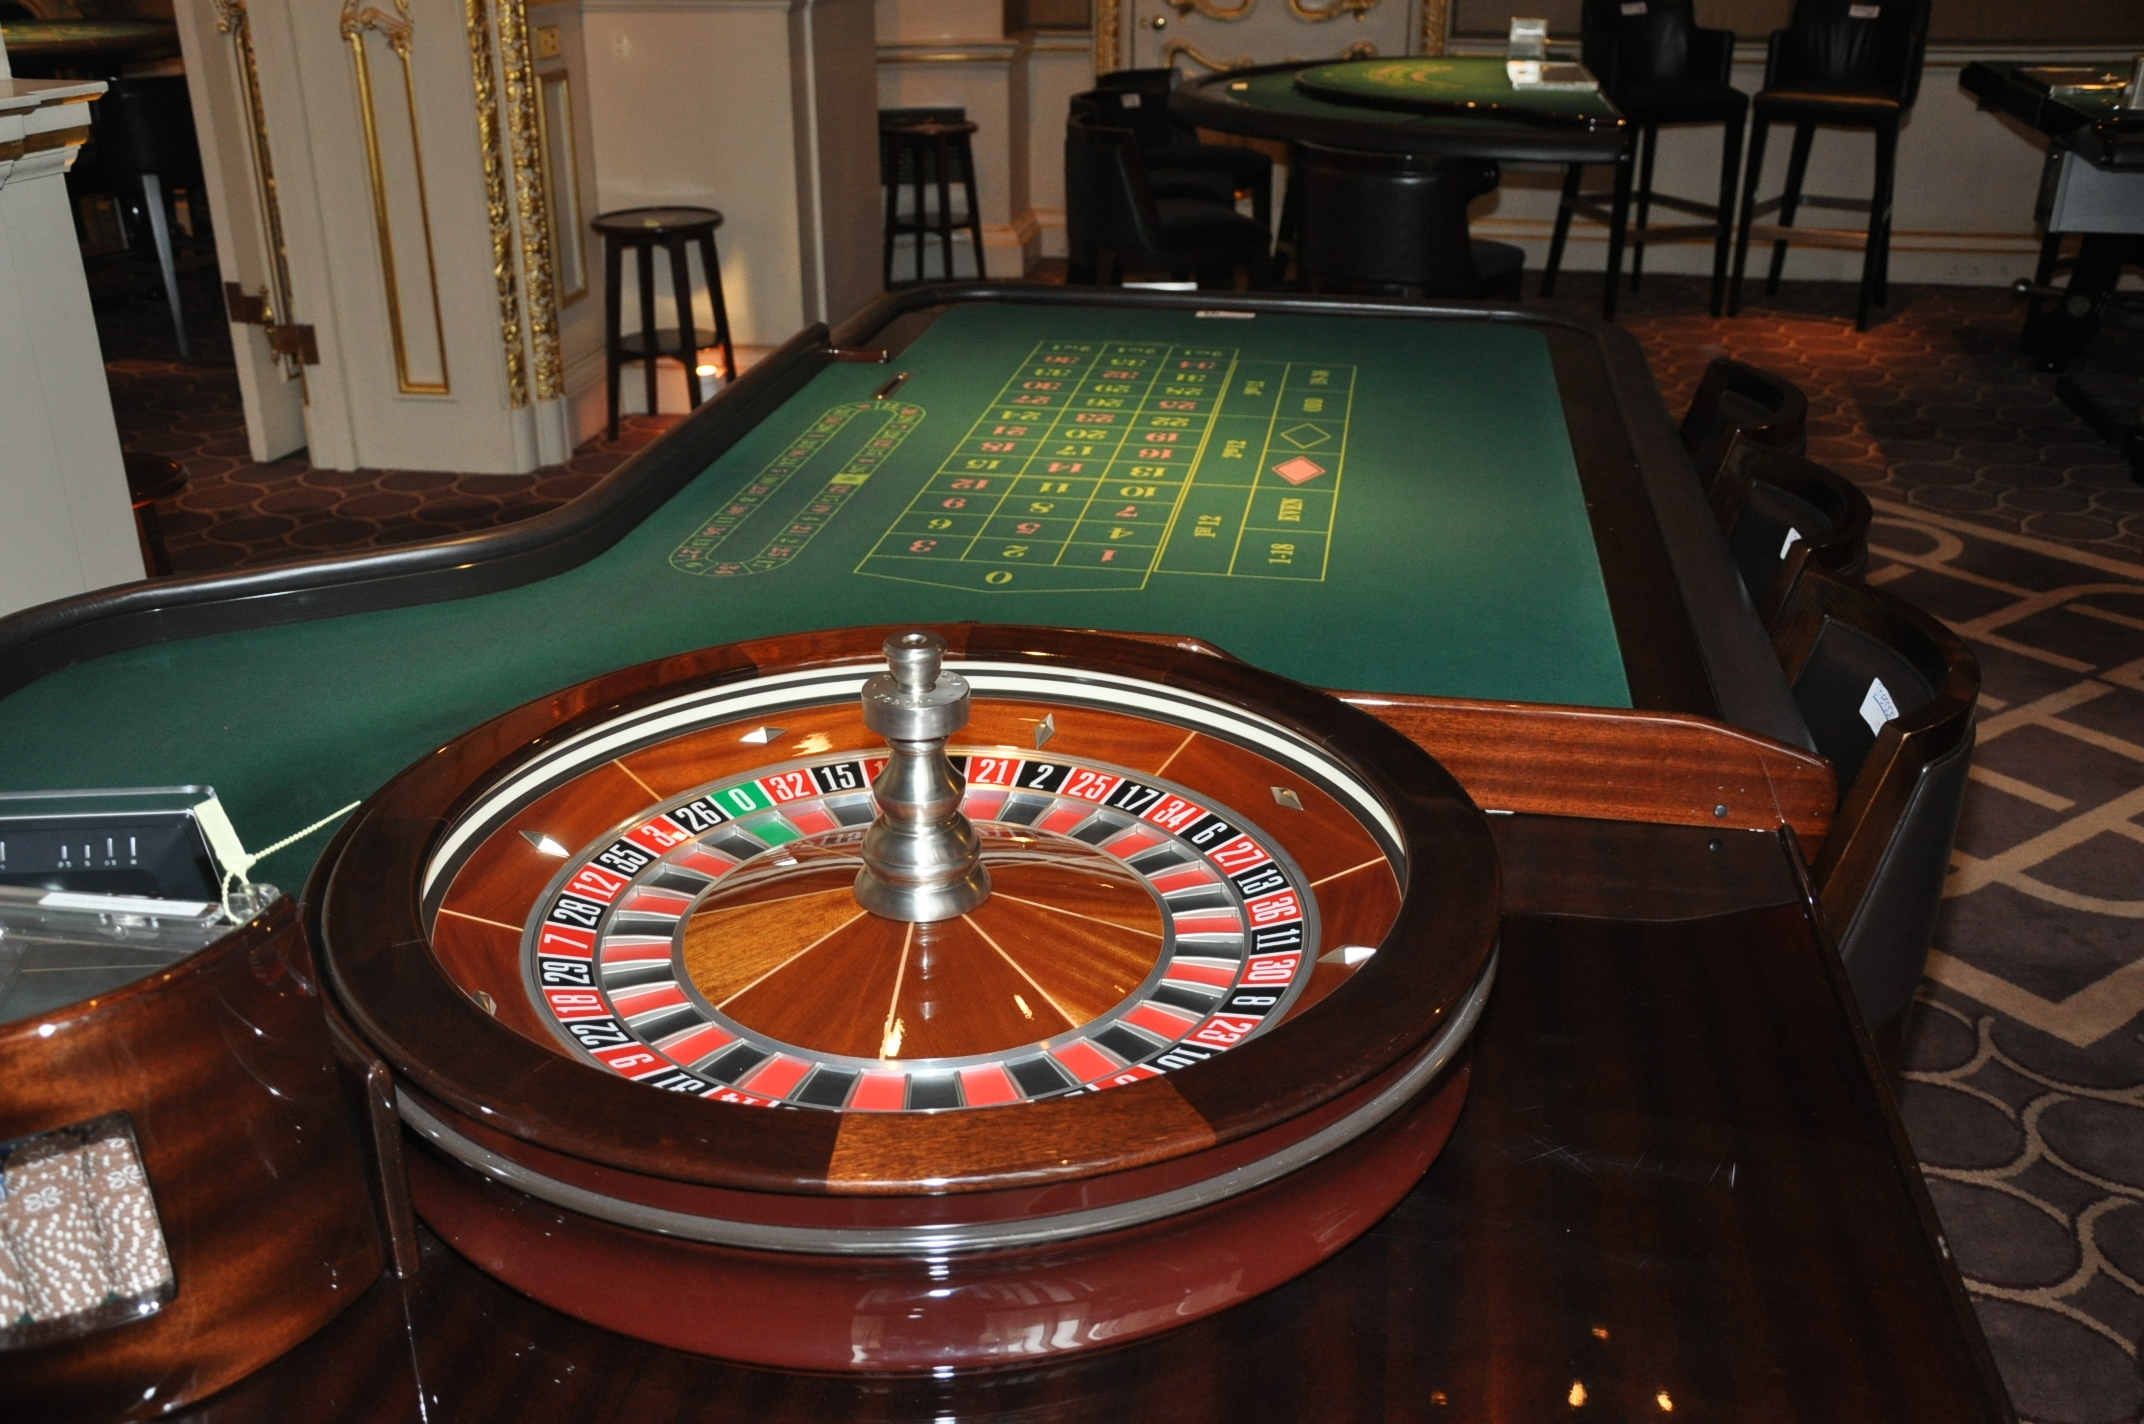 Roulette Torino Casinos In Near Turin Italy 2018 Up To Date List